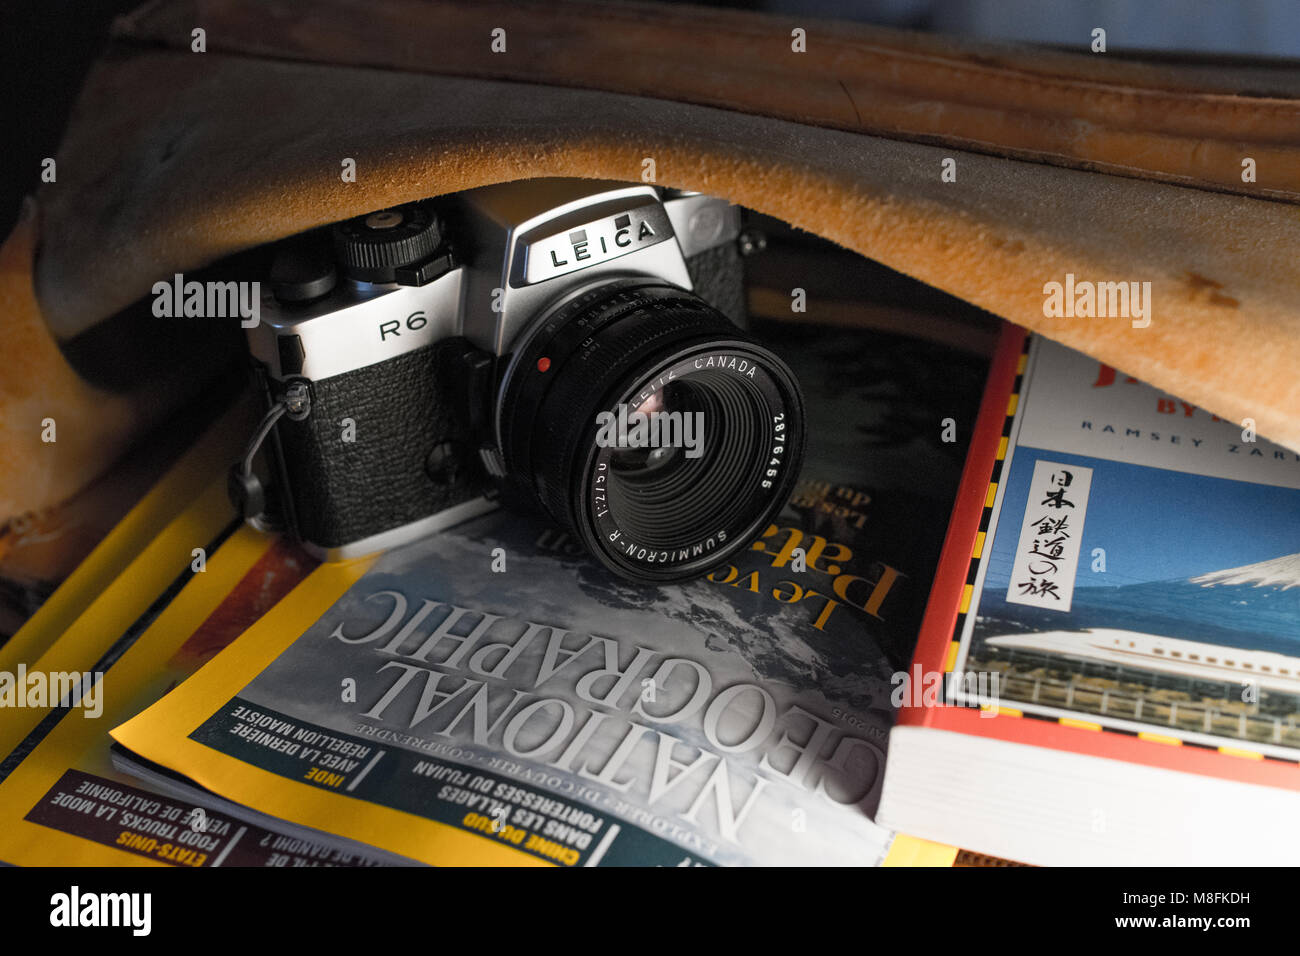 Leica Stock Photos Images Alamy Digital Camera Diagram Film My Journey R6 Ready For The Image